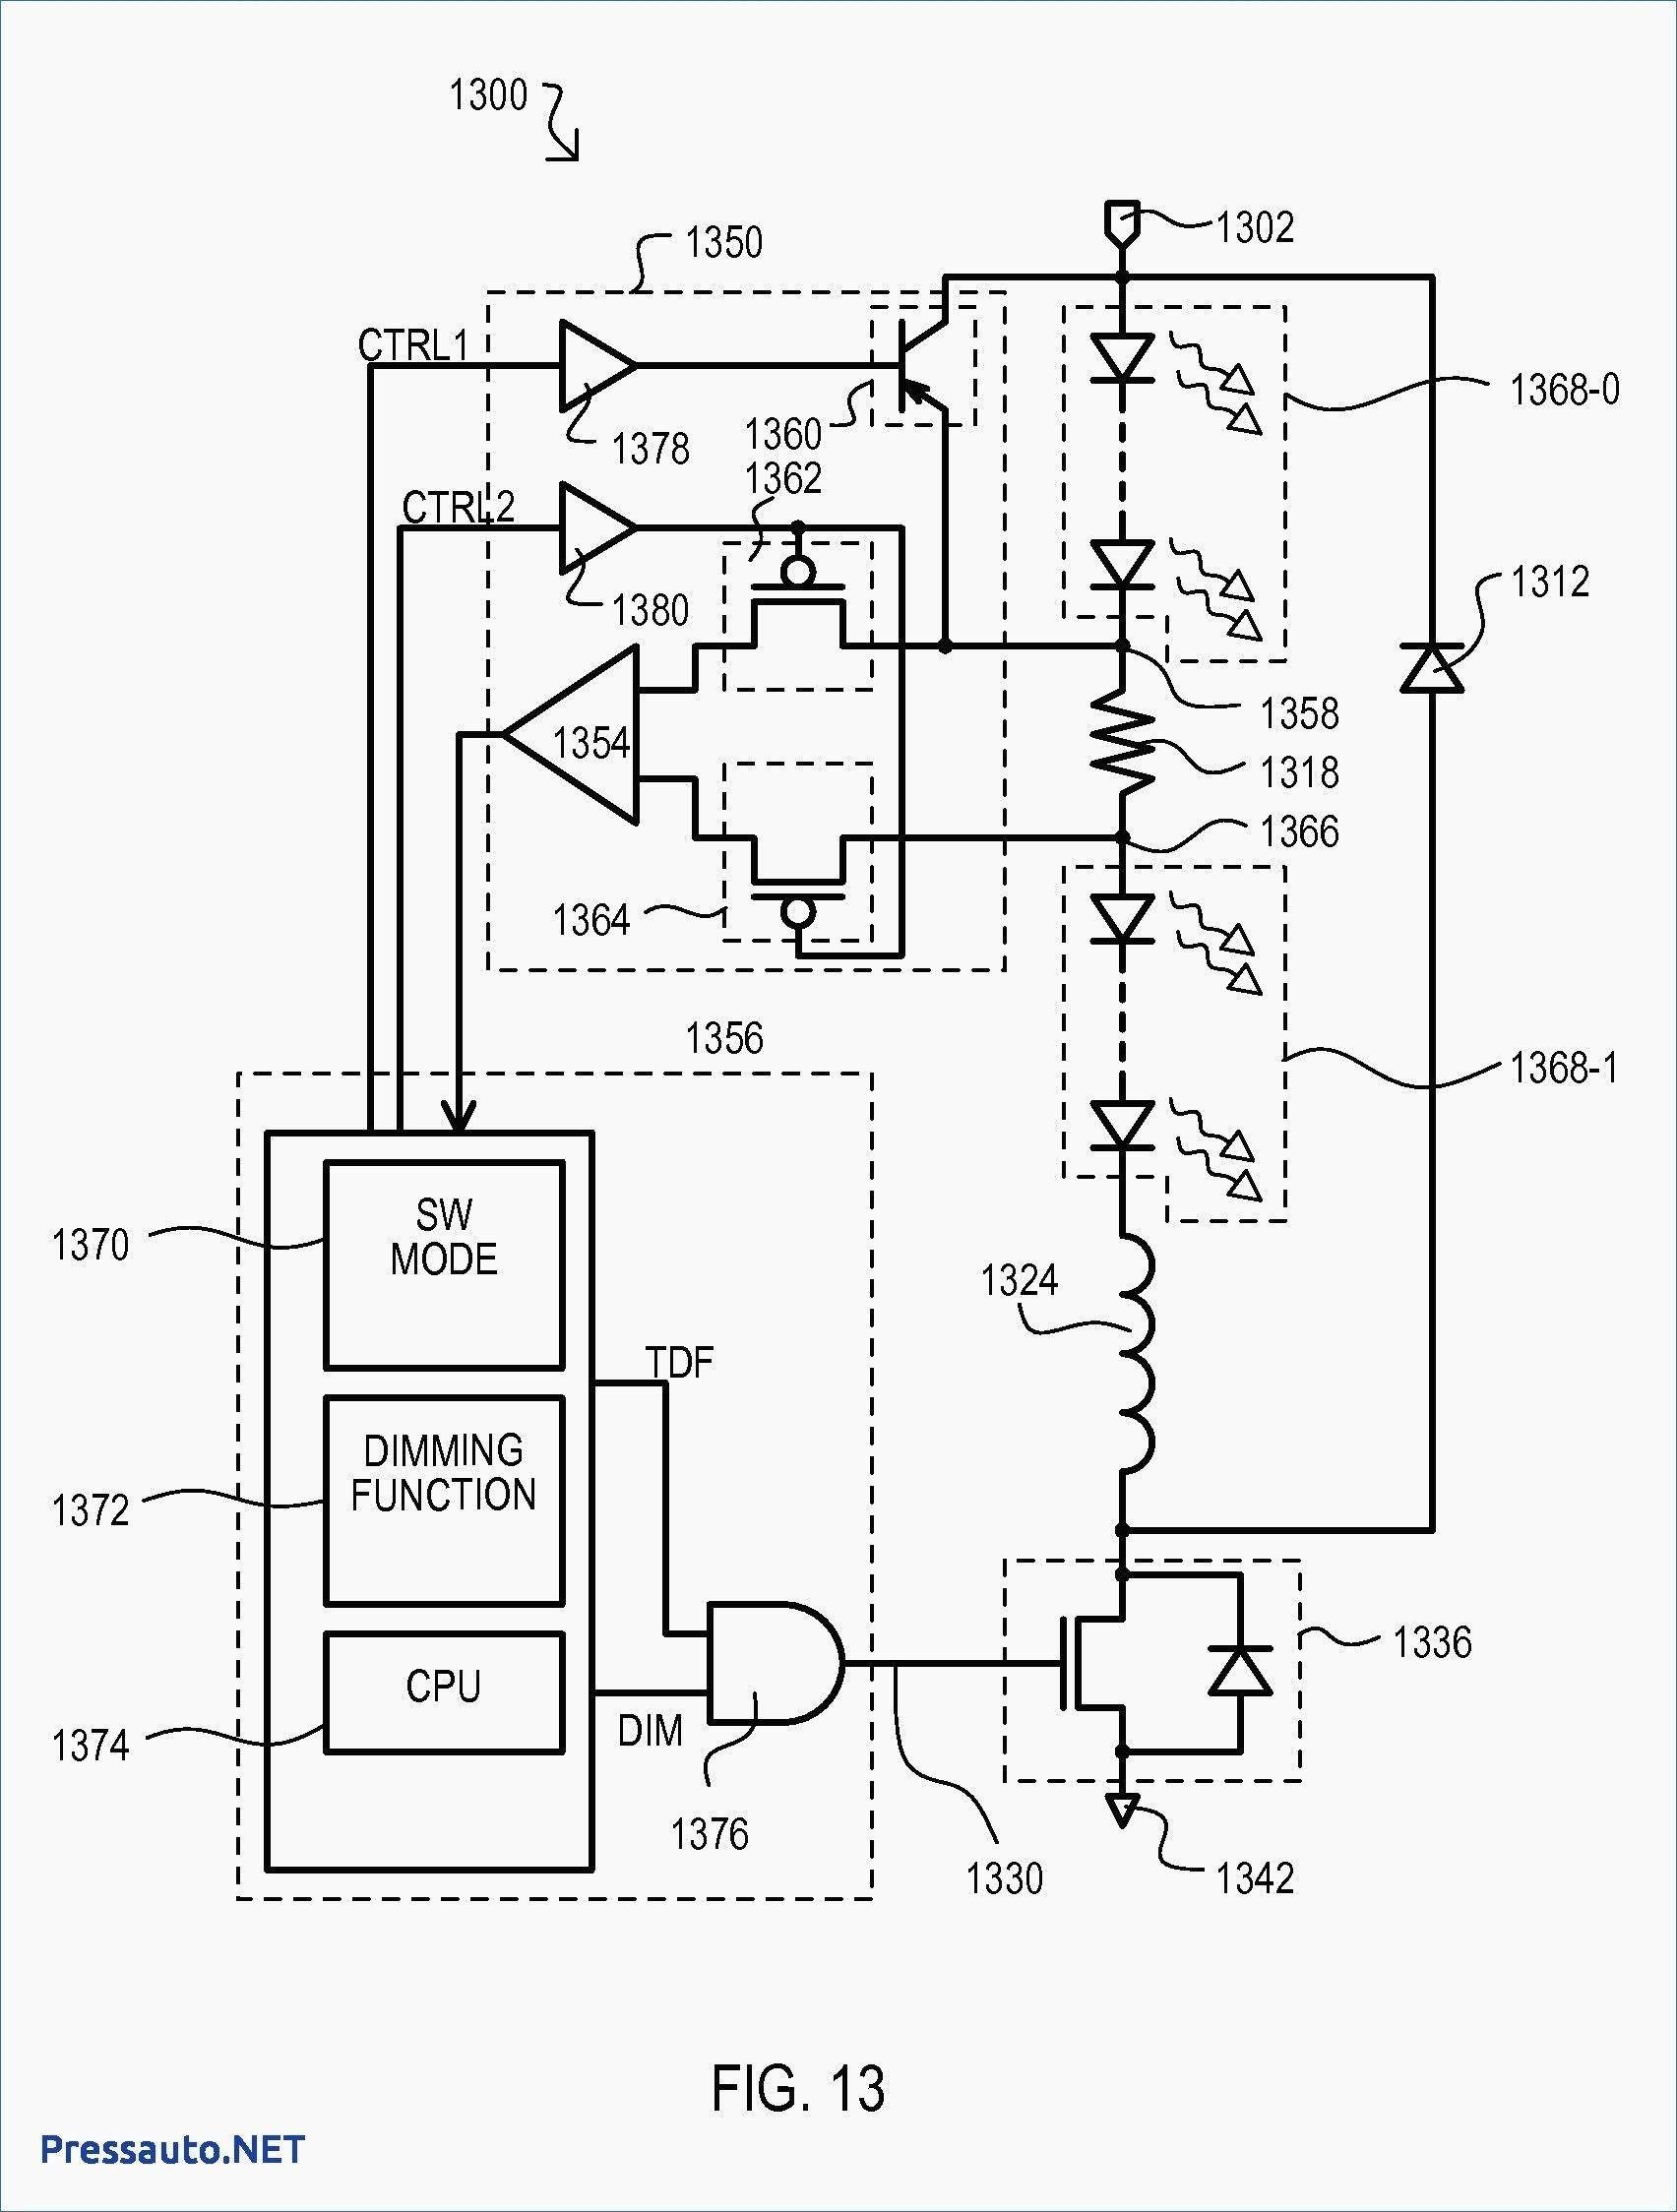 hight resolution of unique house electrical wiring diagram south africa diagram diagramsample diagramtemplate wiringdiagram